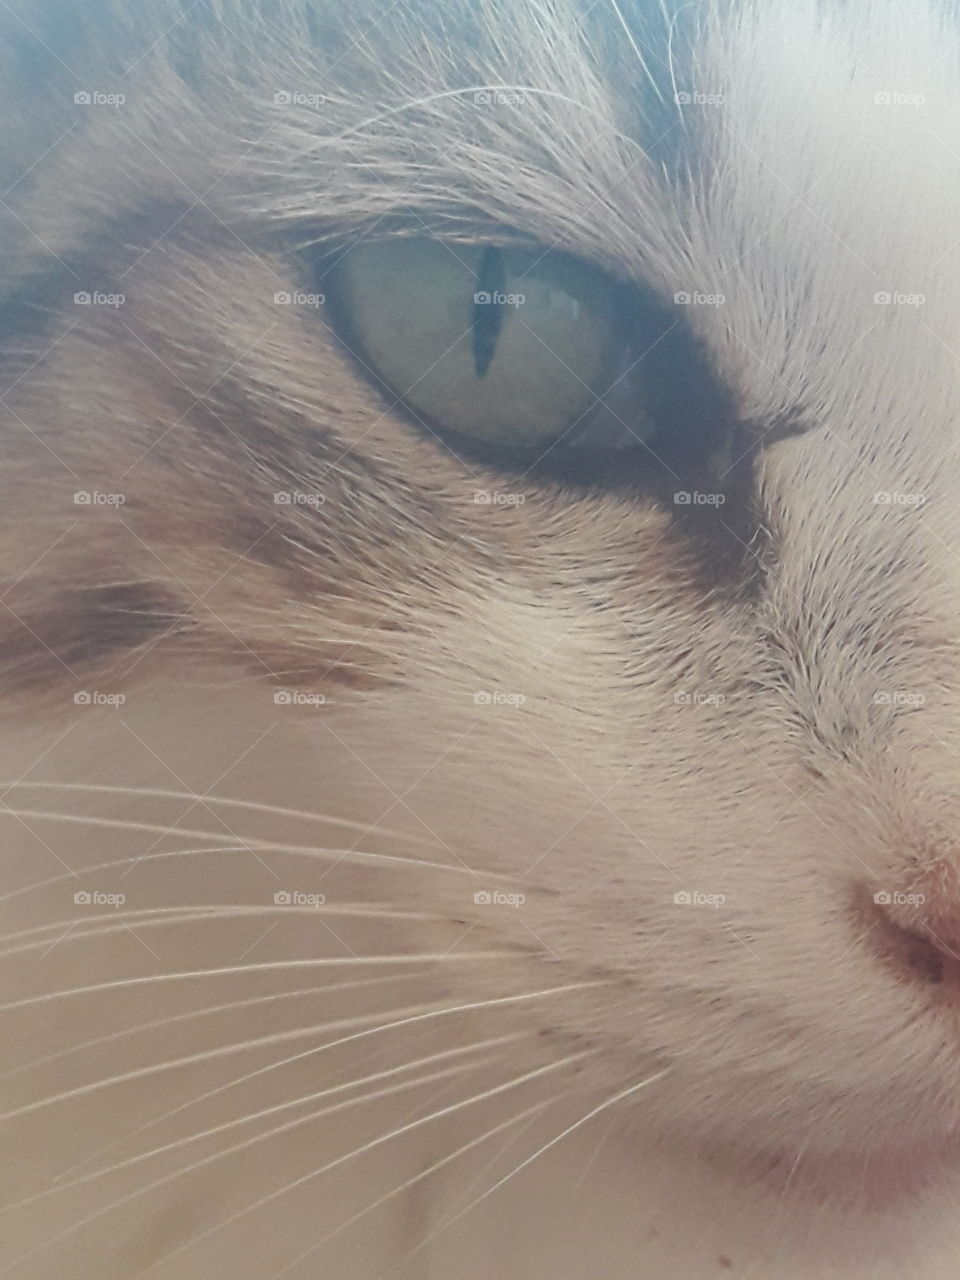 very close to the cat's face